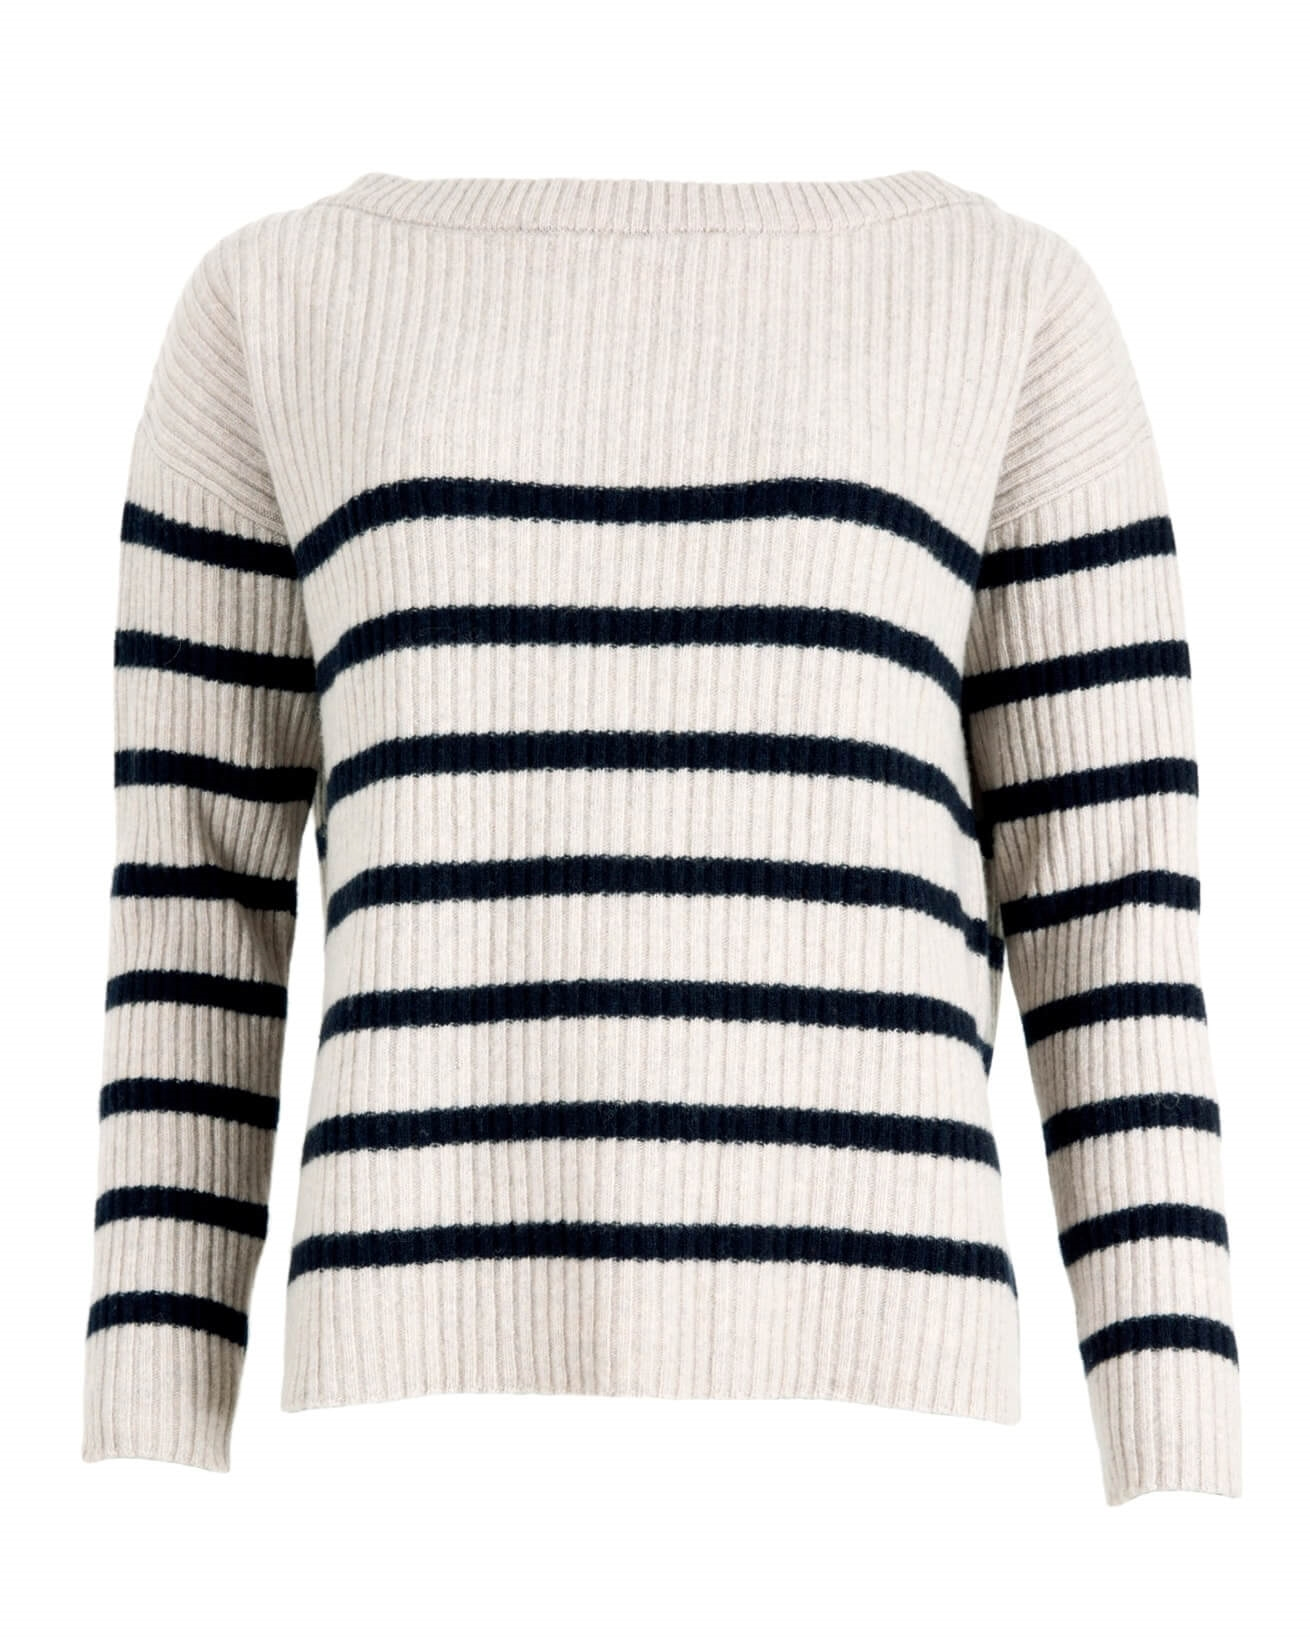 7561-boat-neck-breton-jumper-almond_navy-front_comp.jpg